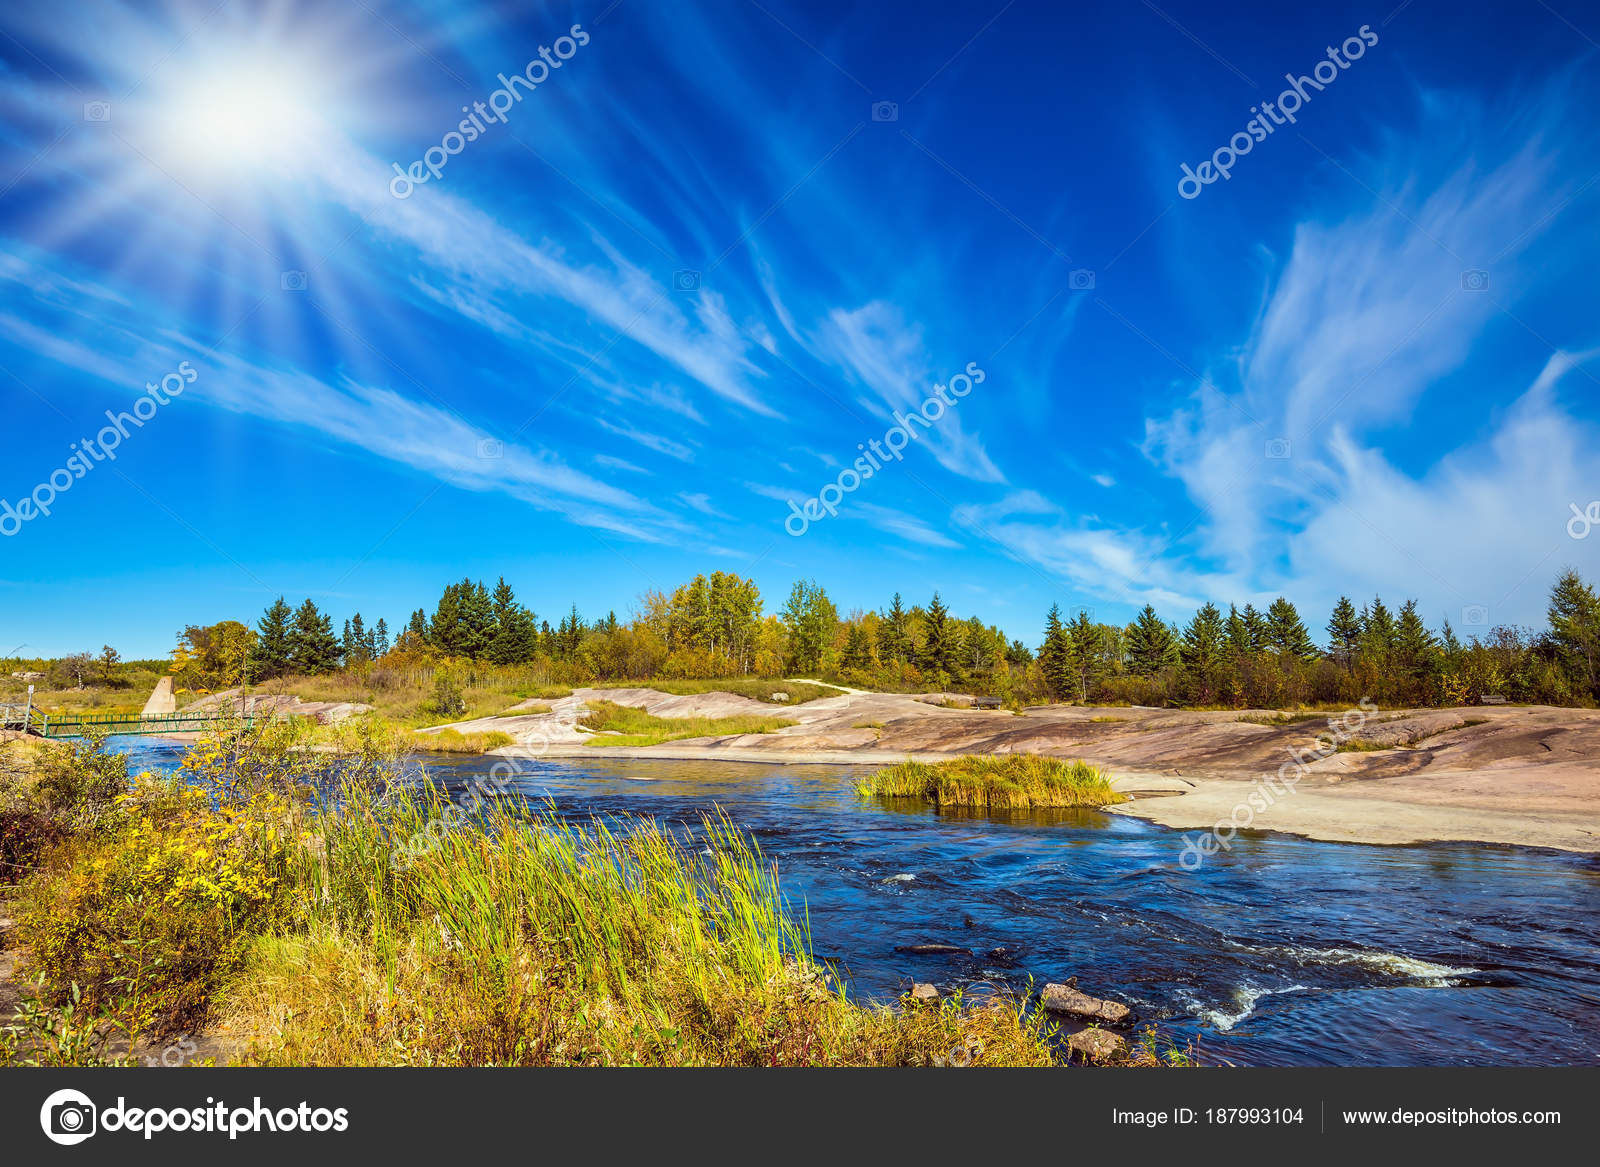 indian summer manitoba canada improbable clouds autumn sun river